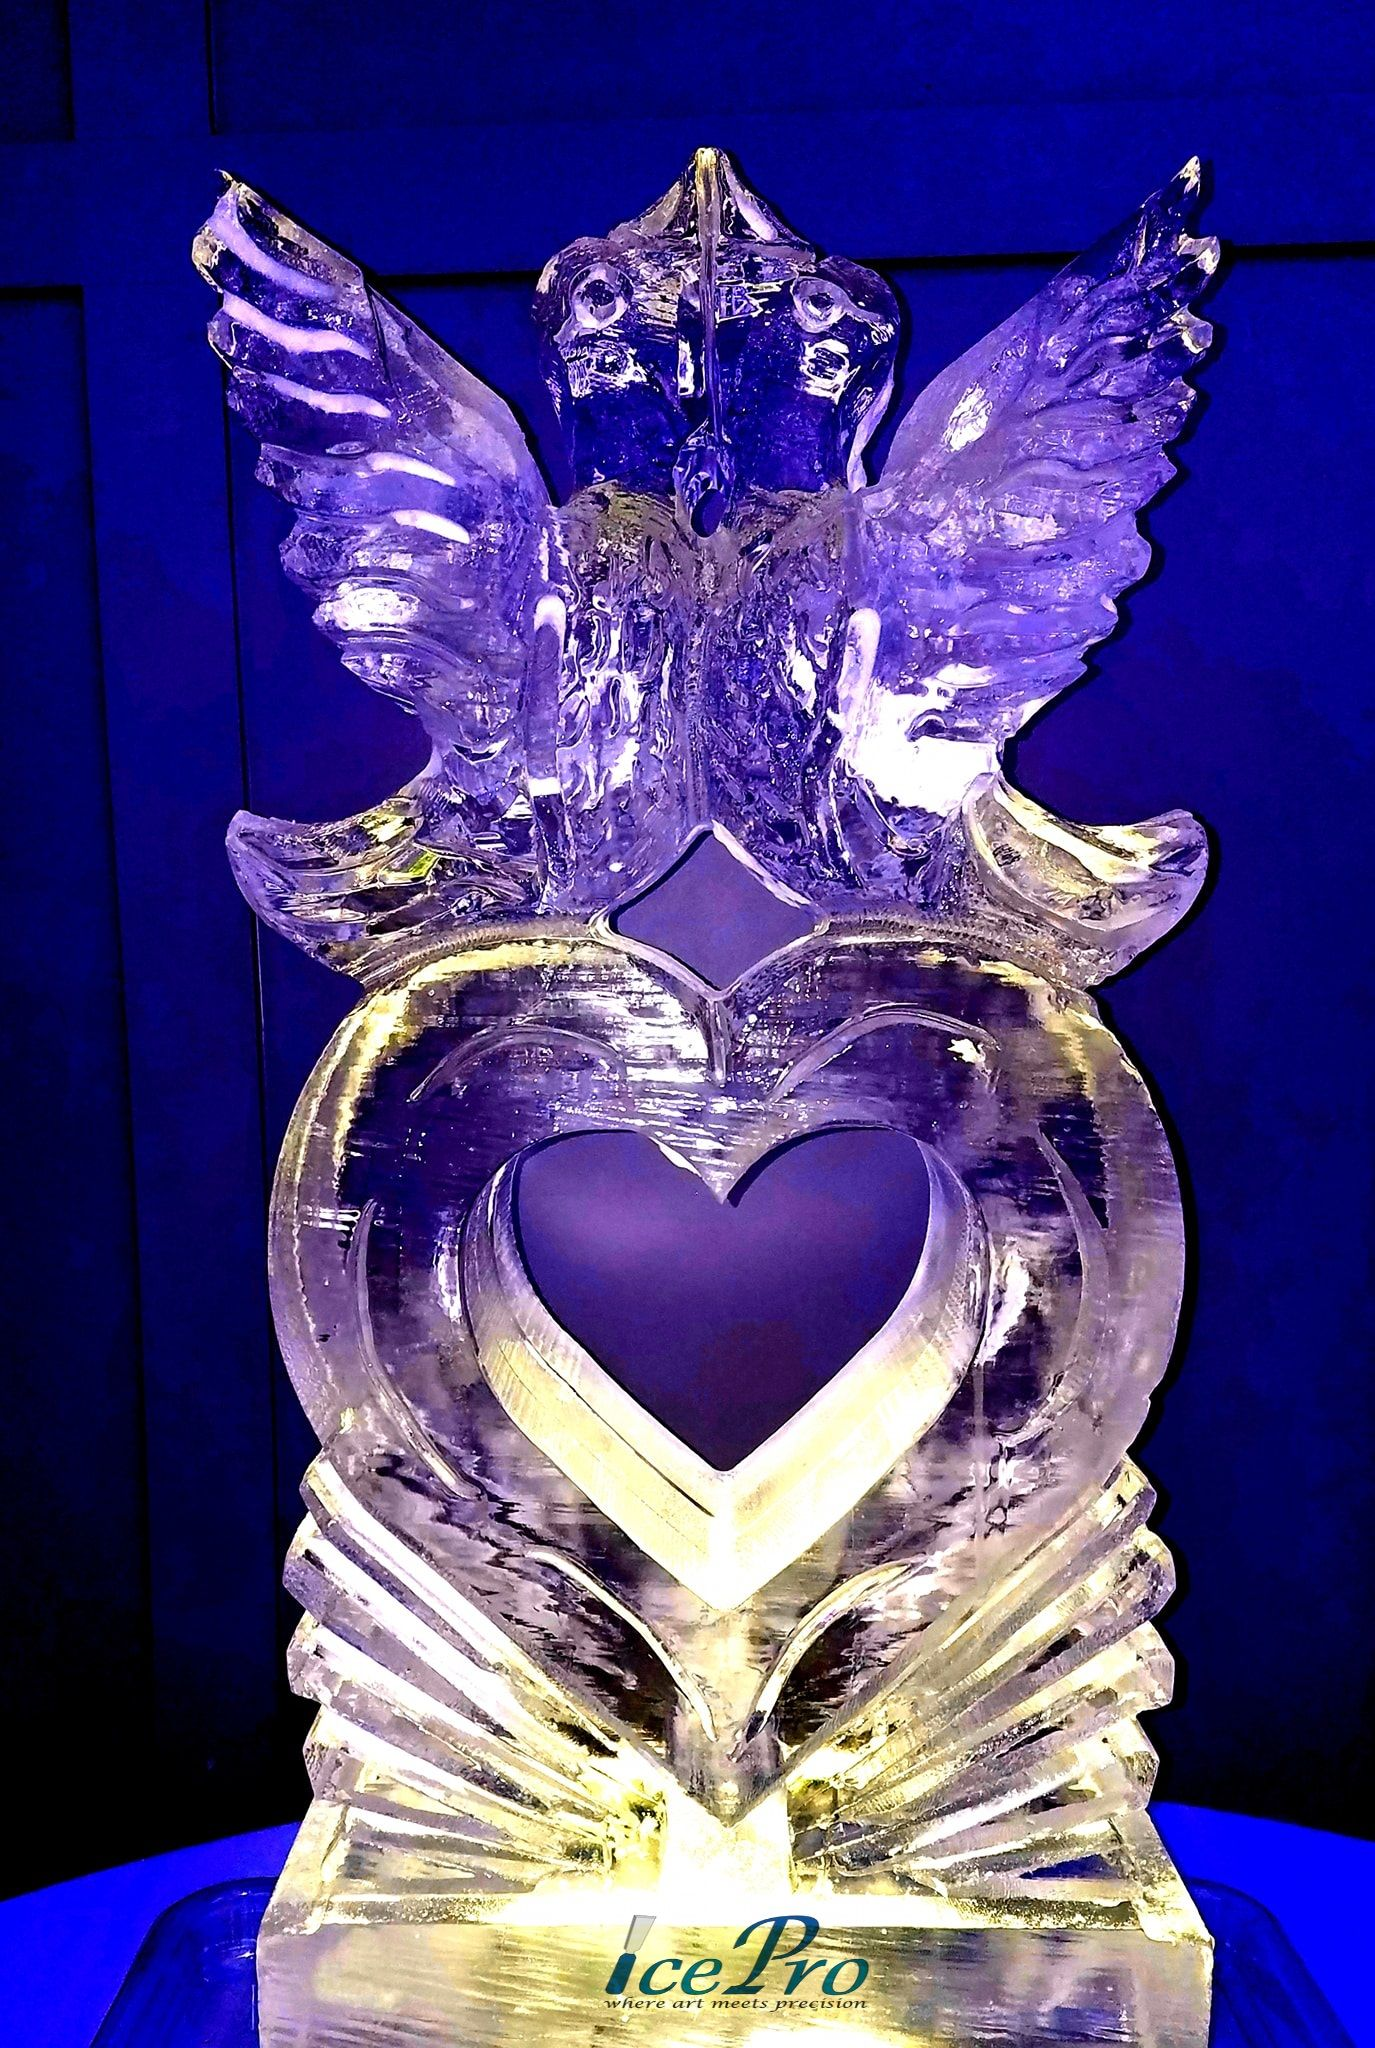 Lovebirds On Heart Ice Sculpture Created For A Wedding Reception From A Full Block Of Ice Icesculpture Ice Sculpture Wedding Snow Sculptures Ice Sculptures